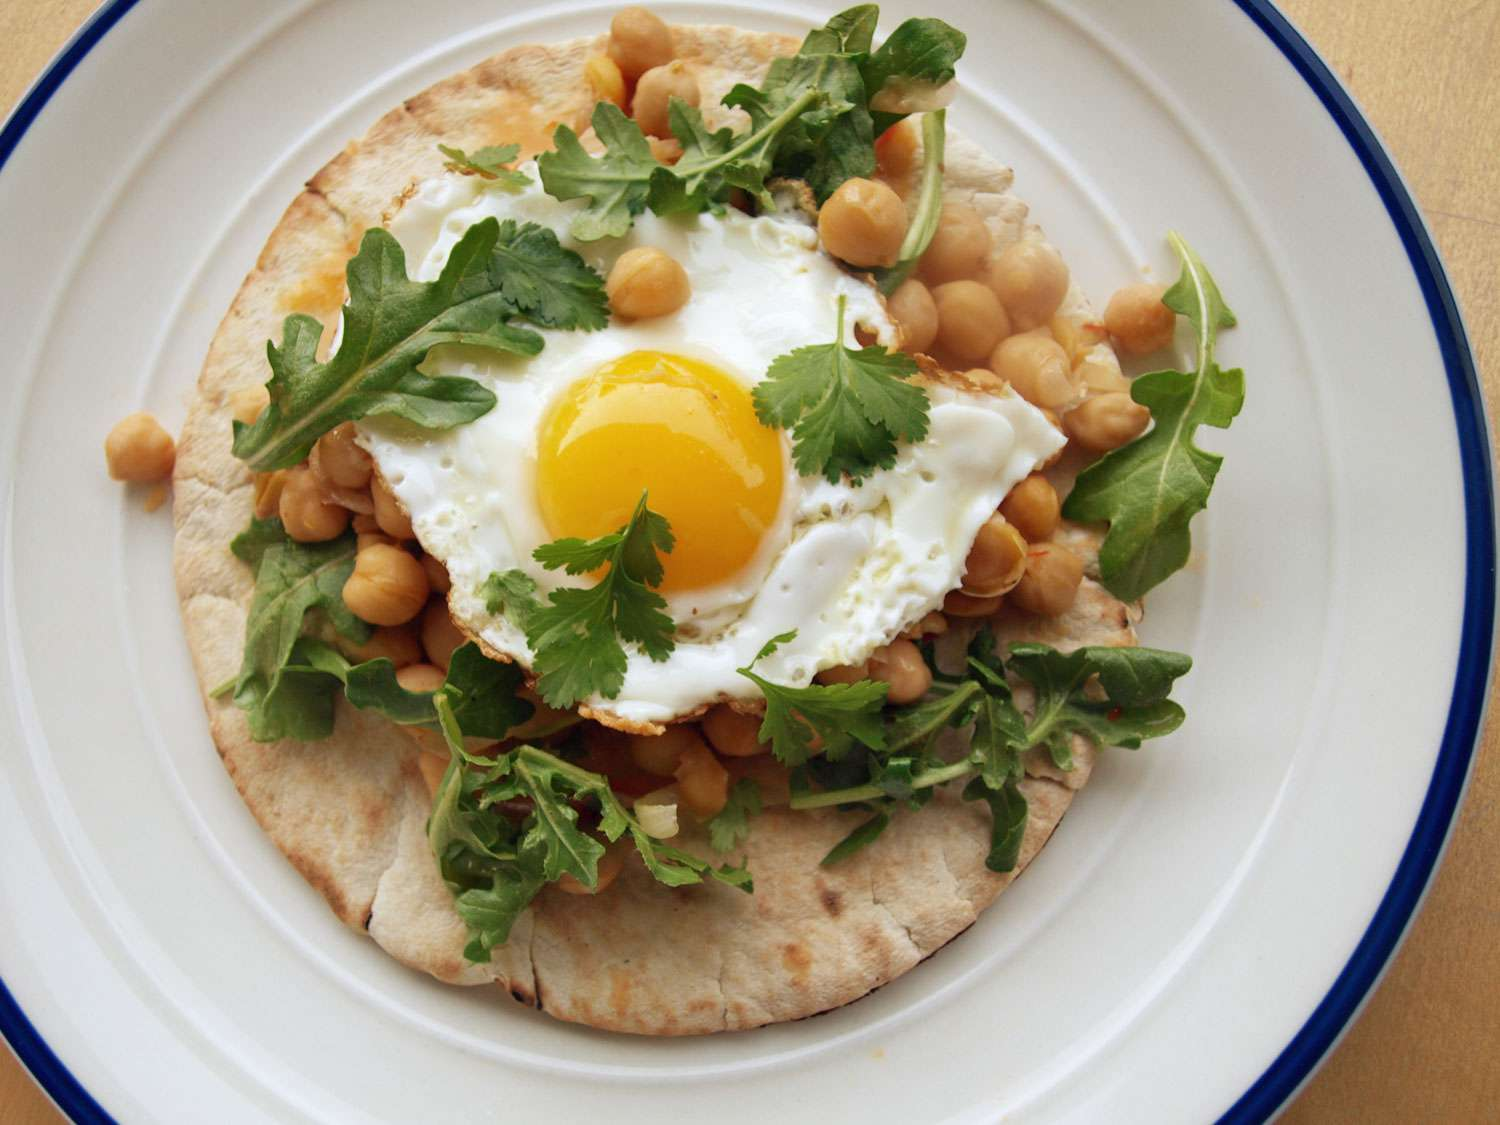 Harissa-spiked chickpeas on top of pita bread, topped with arugula, herbs, and a fried egg